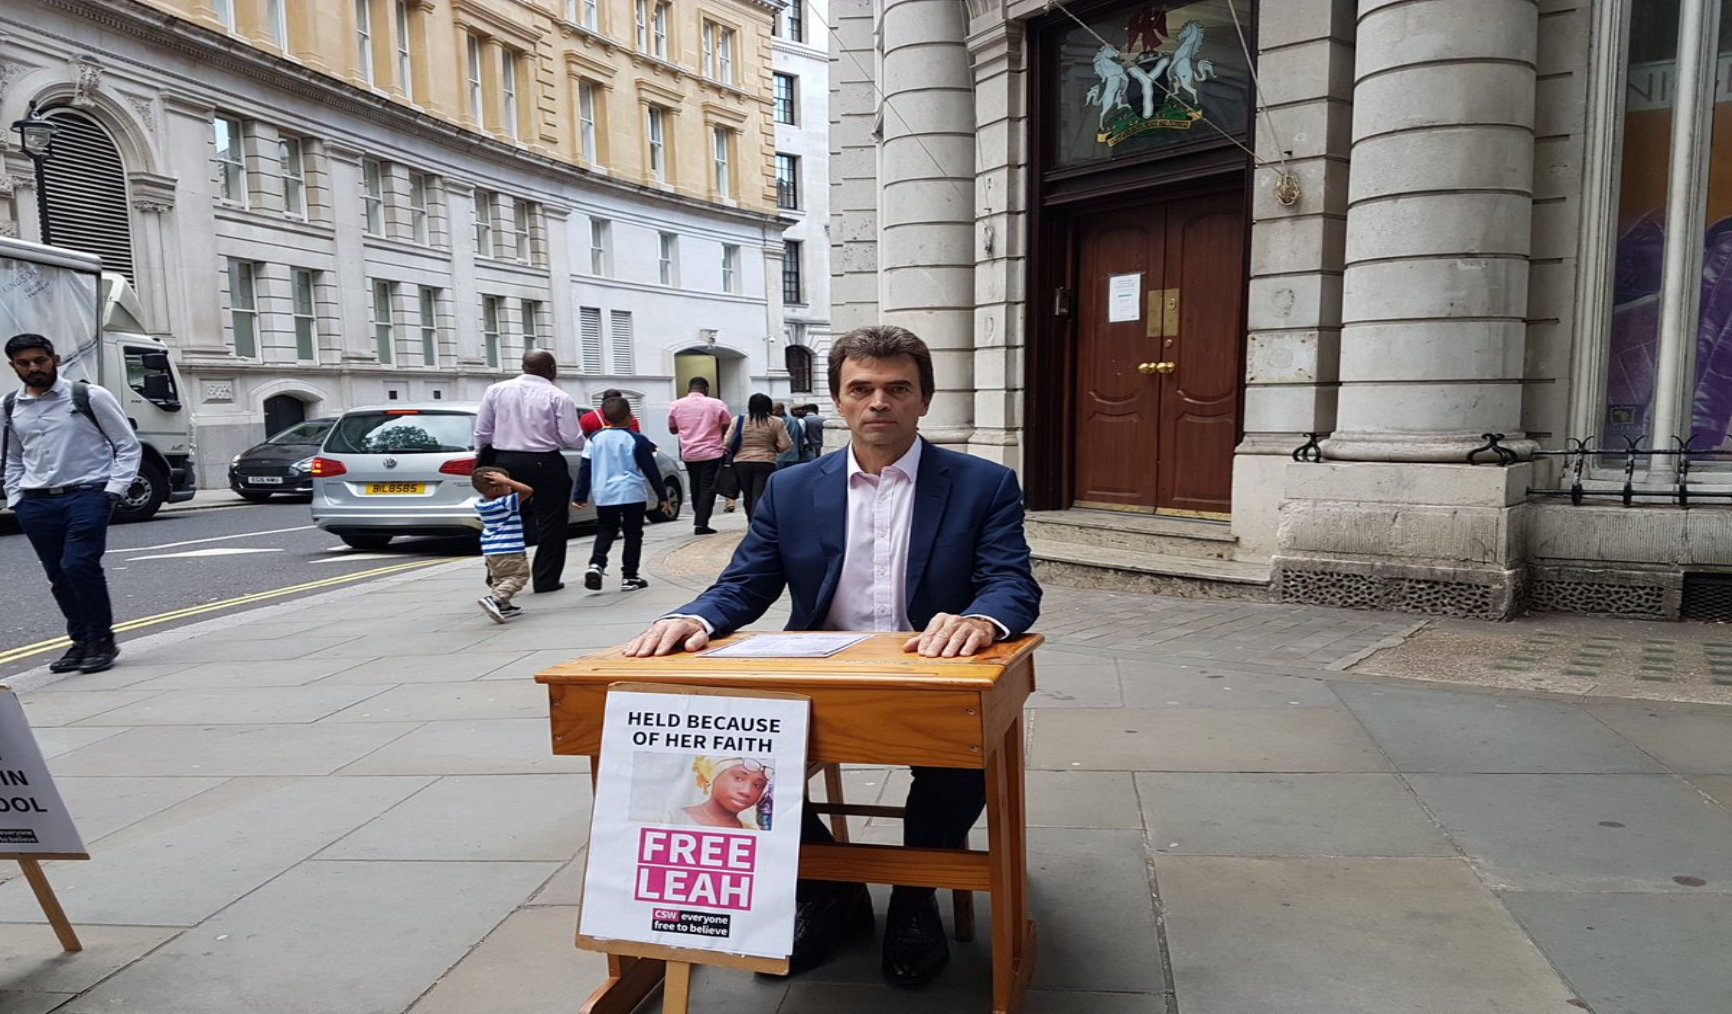 FW: UK MP joins campaign advocating for the release of Leah Sharibu, the last Dapchi girl